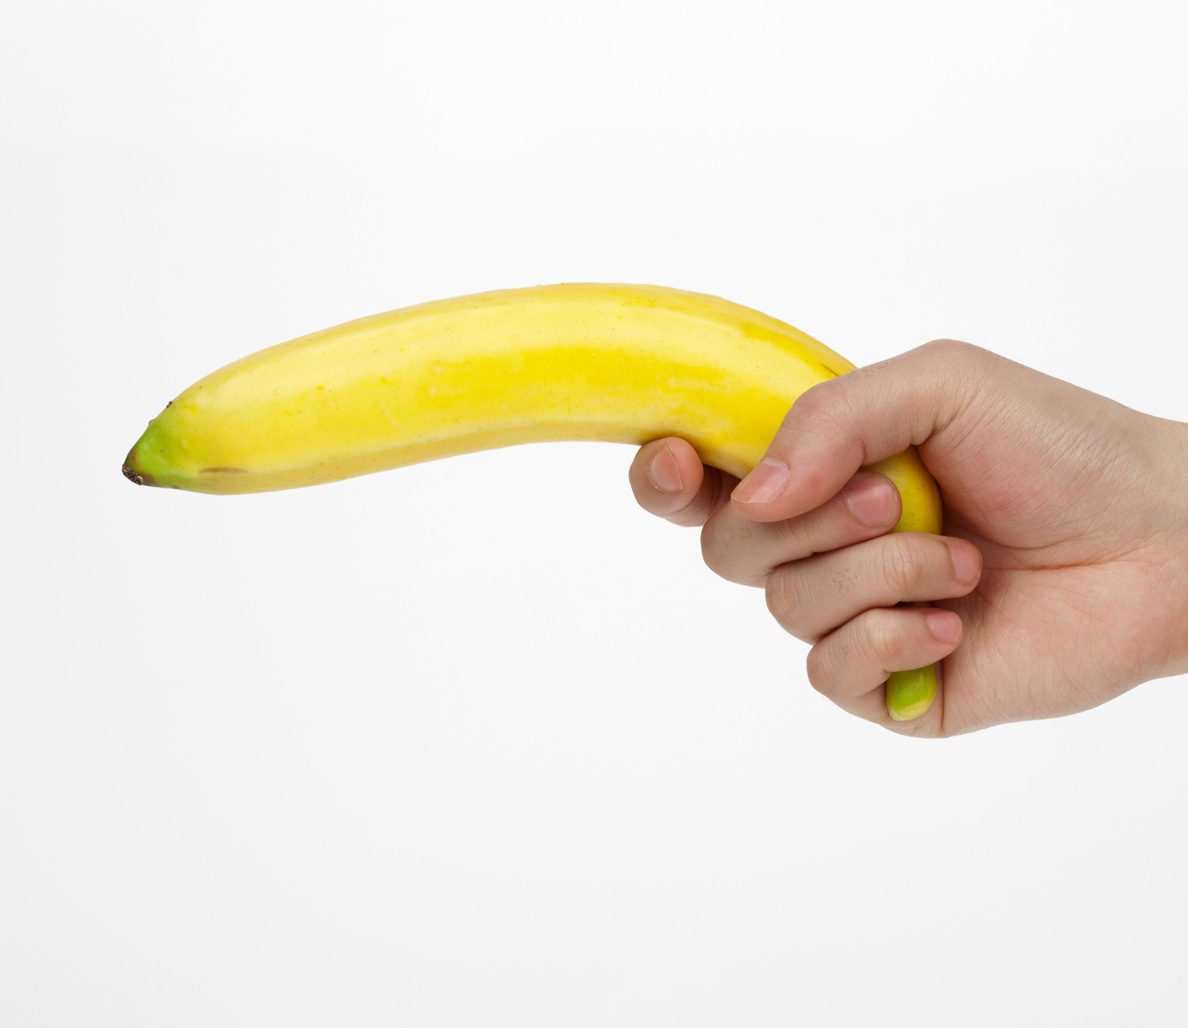 How can i make my penis grow bigger